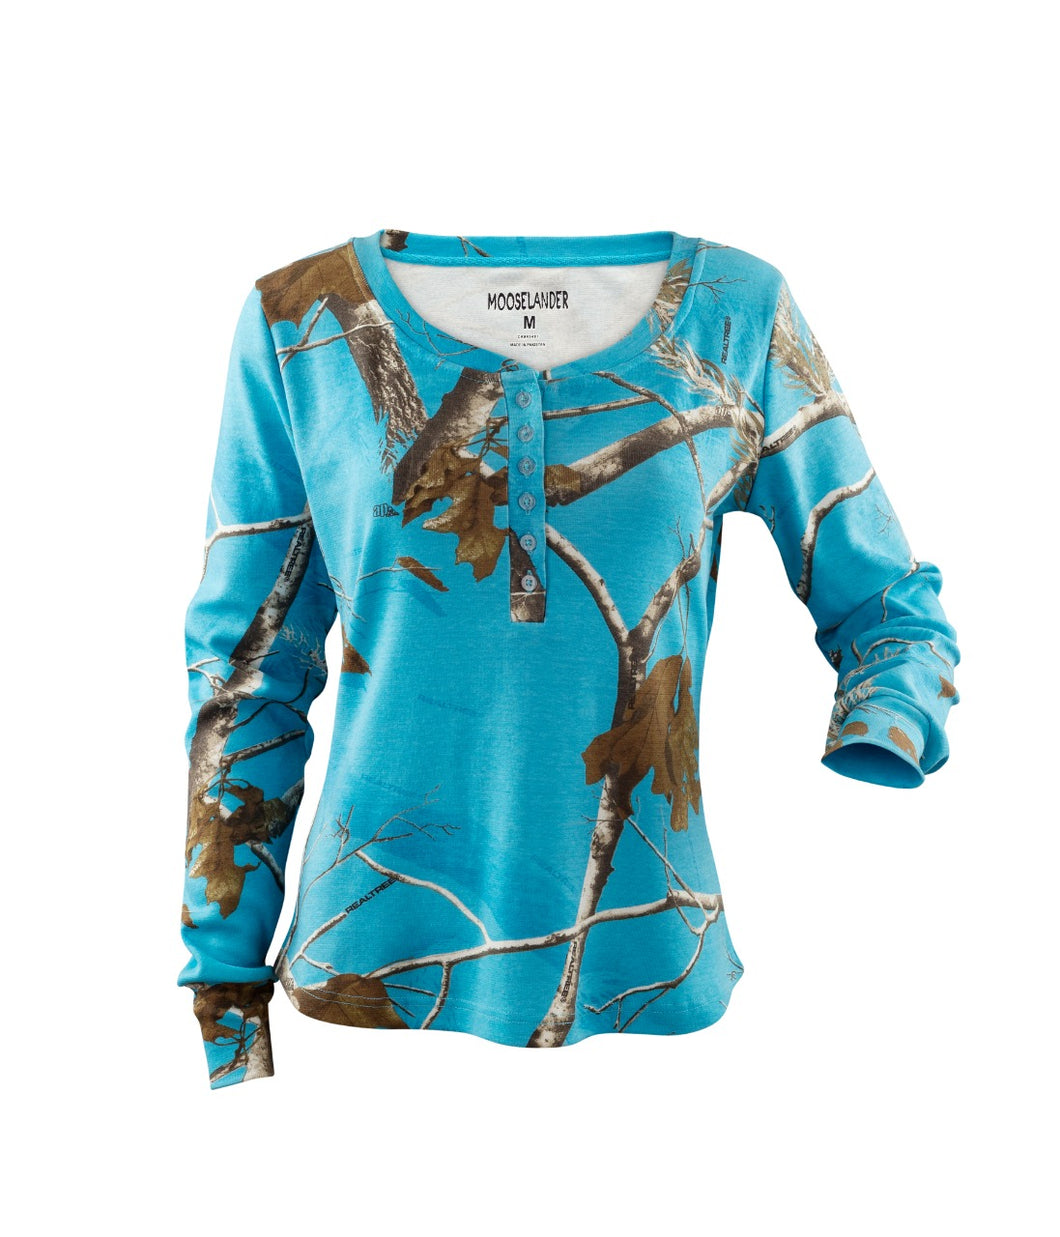 Ladies Long Sleeve Henley Shirt in Realtree AP Blue Fish Camo Print